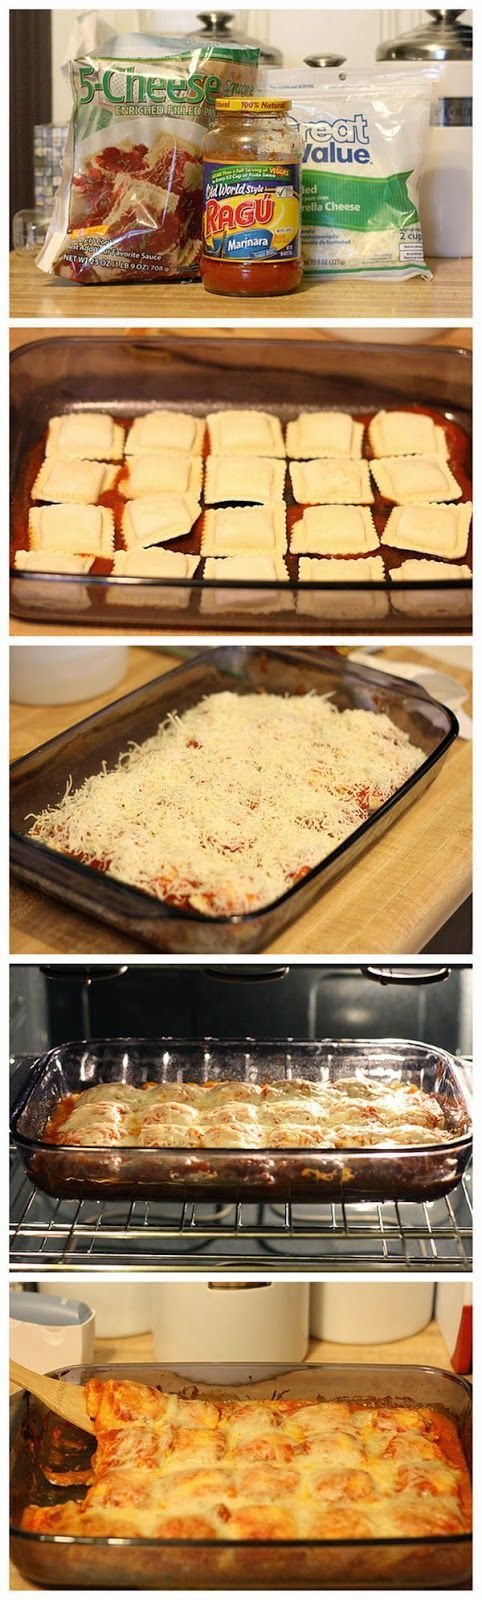 Baked Ravioli -  This Looks Delicious! I think I'm going to add fresh spinach and Italian sausage between the ravioli and cheese